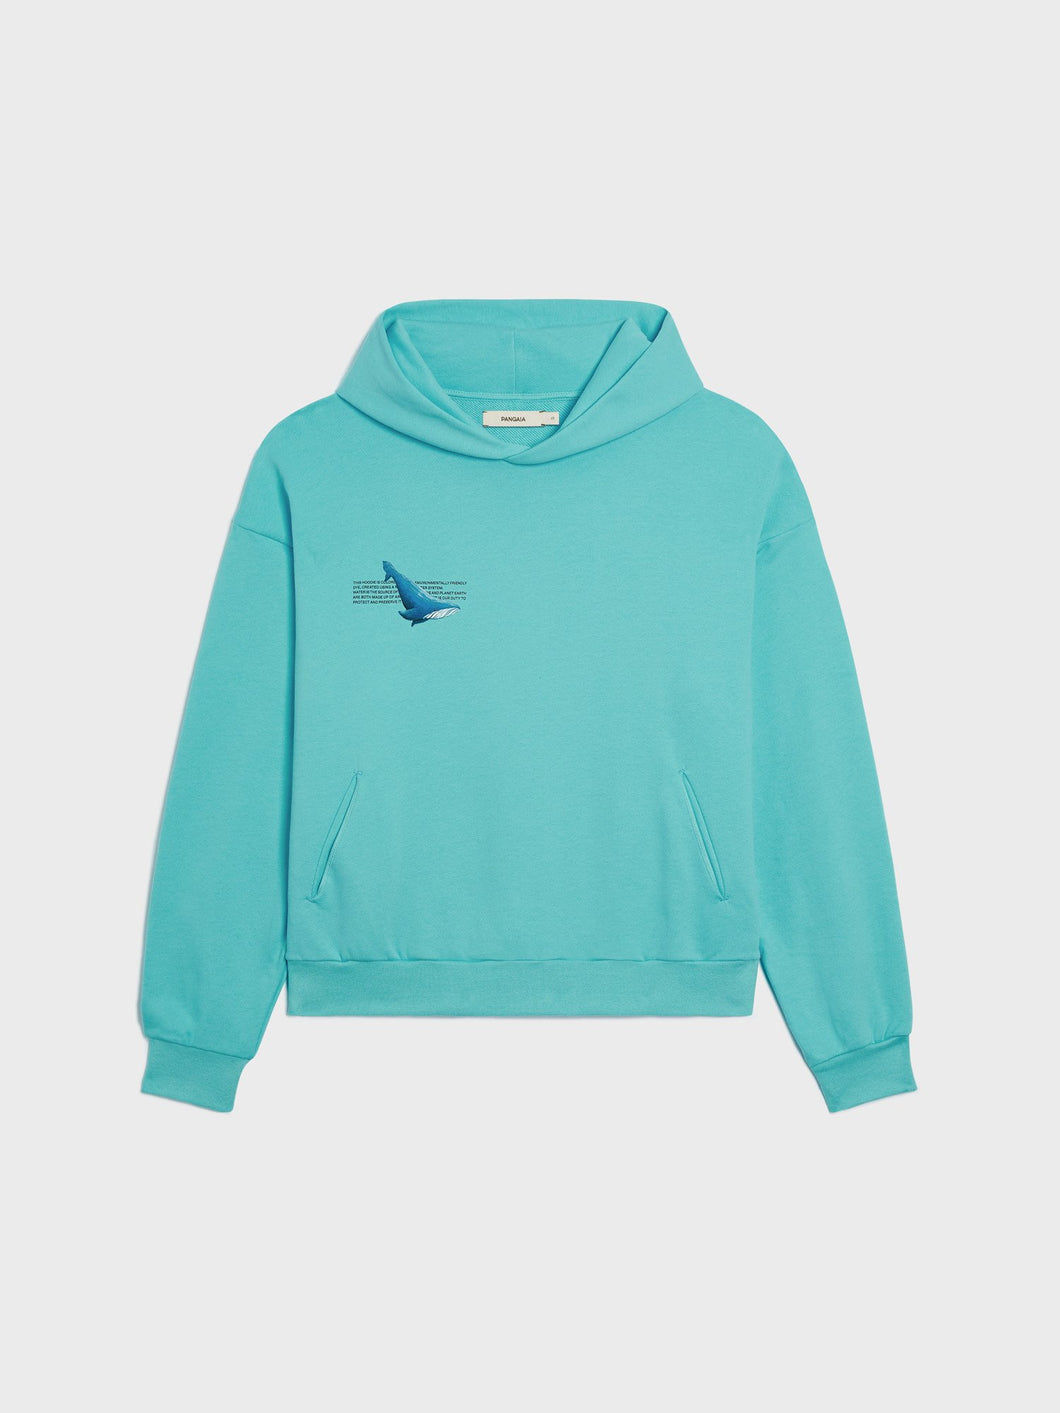 WAHP Whale Organic Cotton Hoodie—Indian Ocean